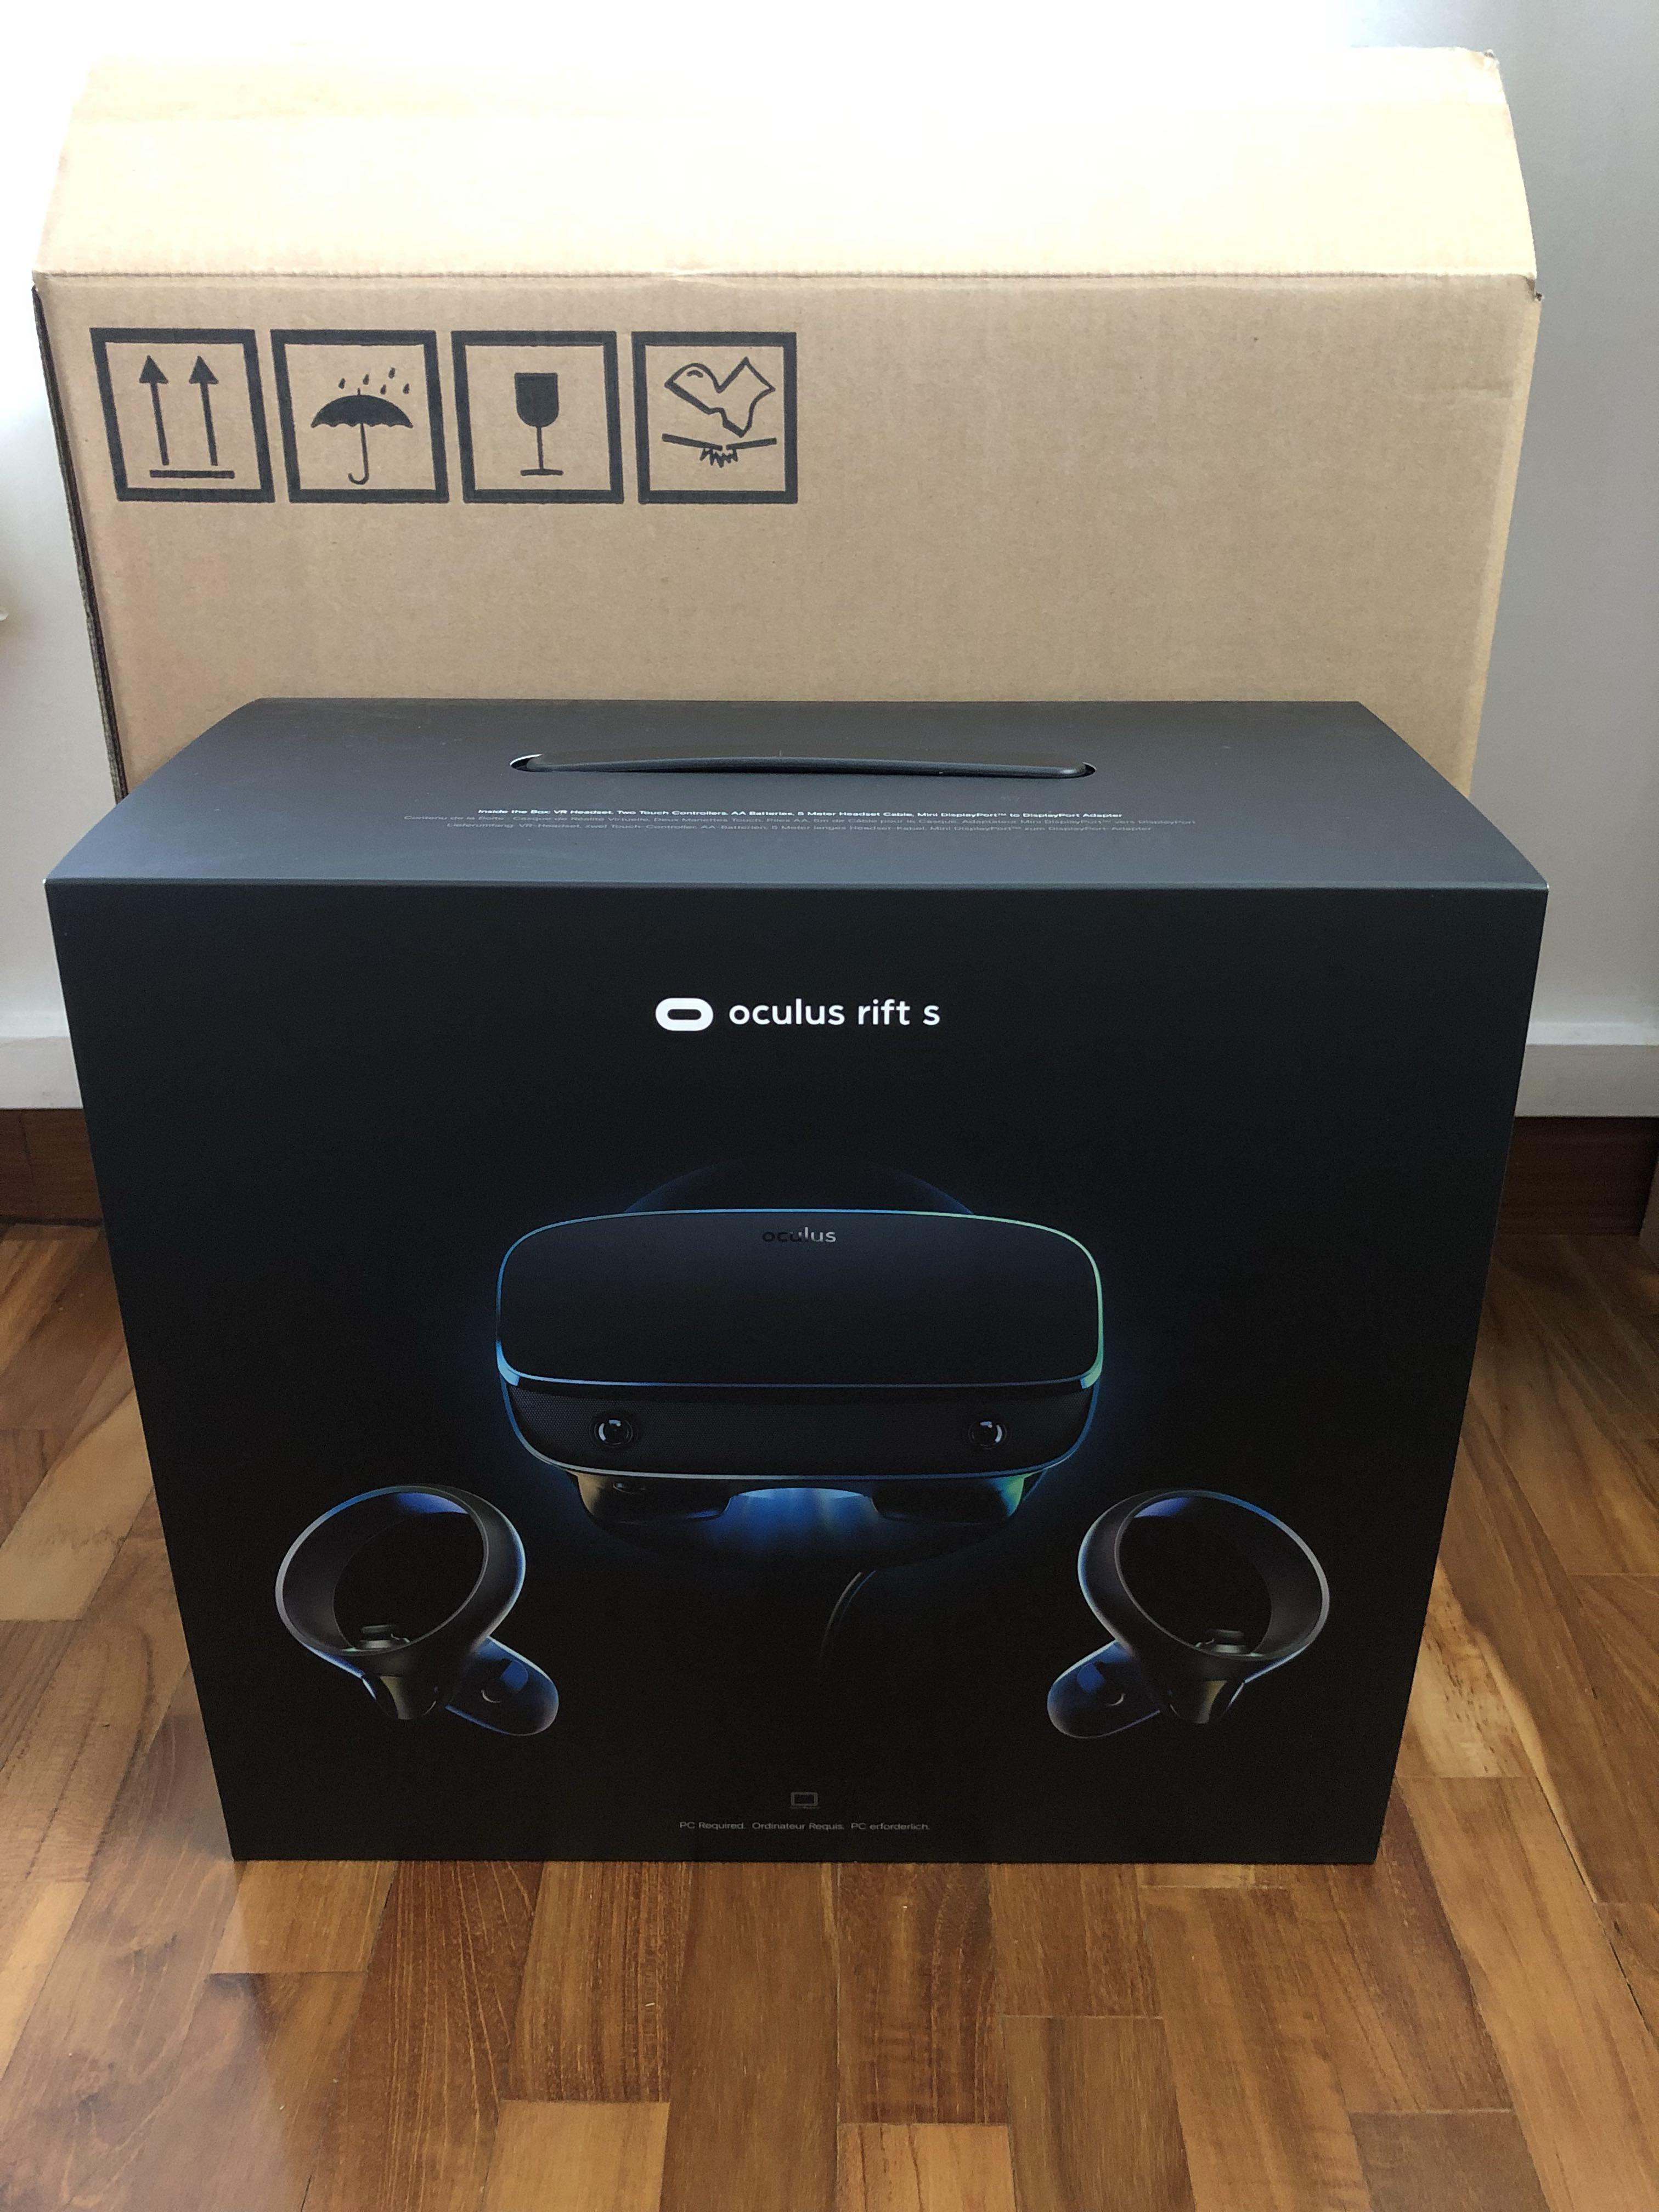 Oculus Rift S PC-Powered VR Gaming Headset, Electronics